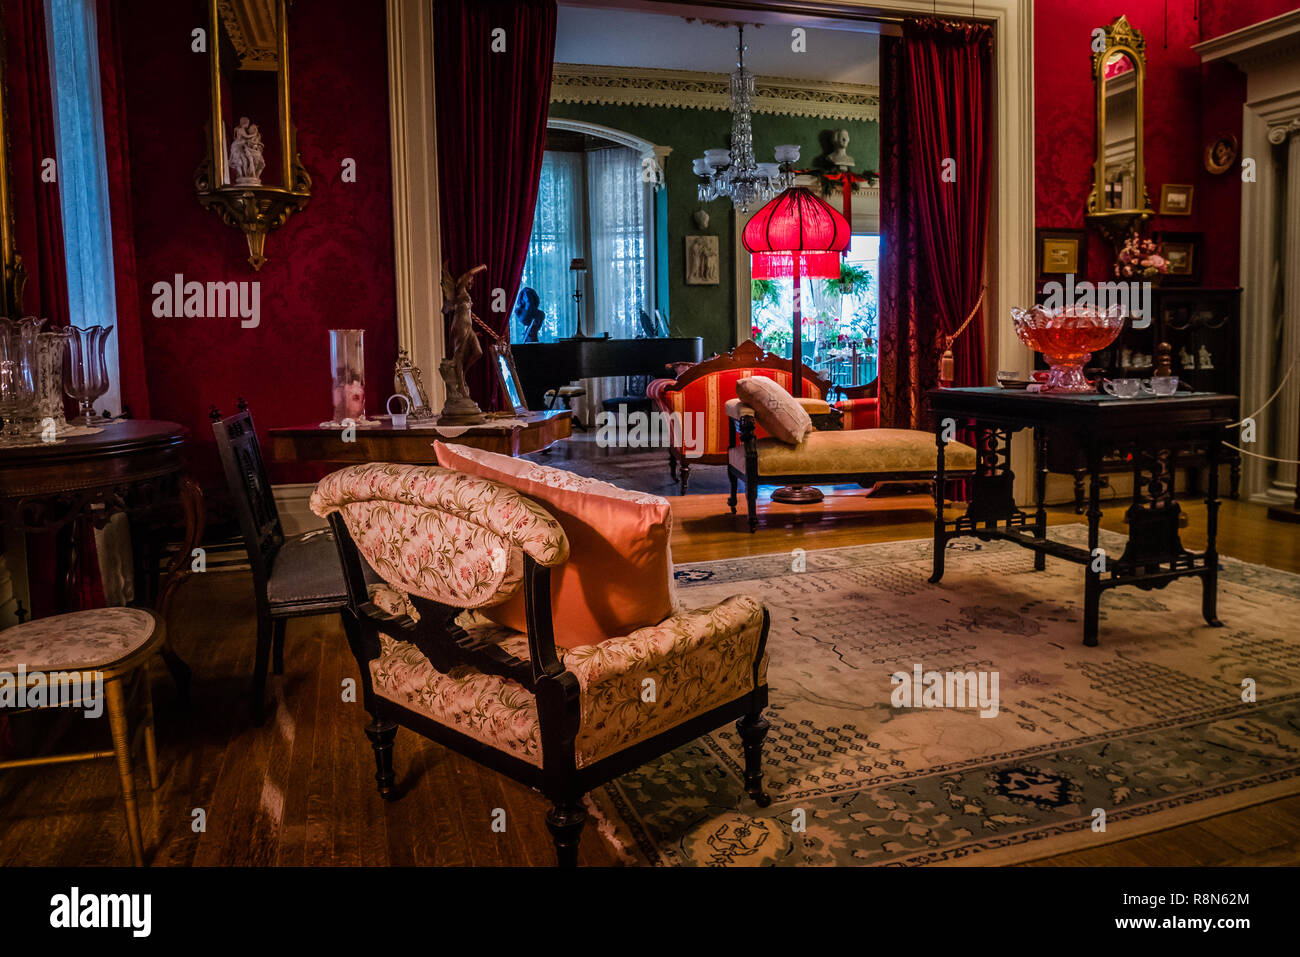 inside the toronto spadina house once occupied by the wealthy austin family in the 1920s - Stock Image